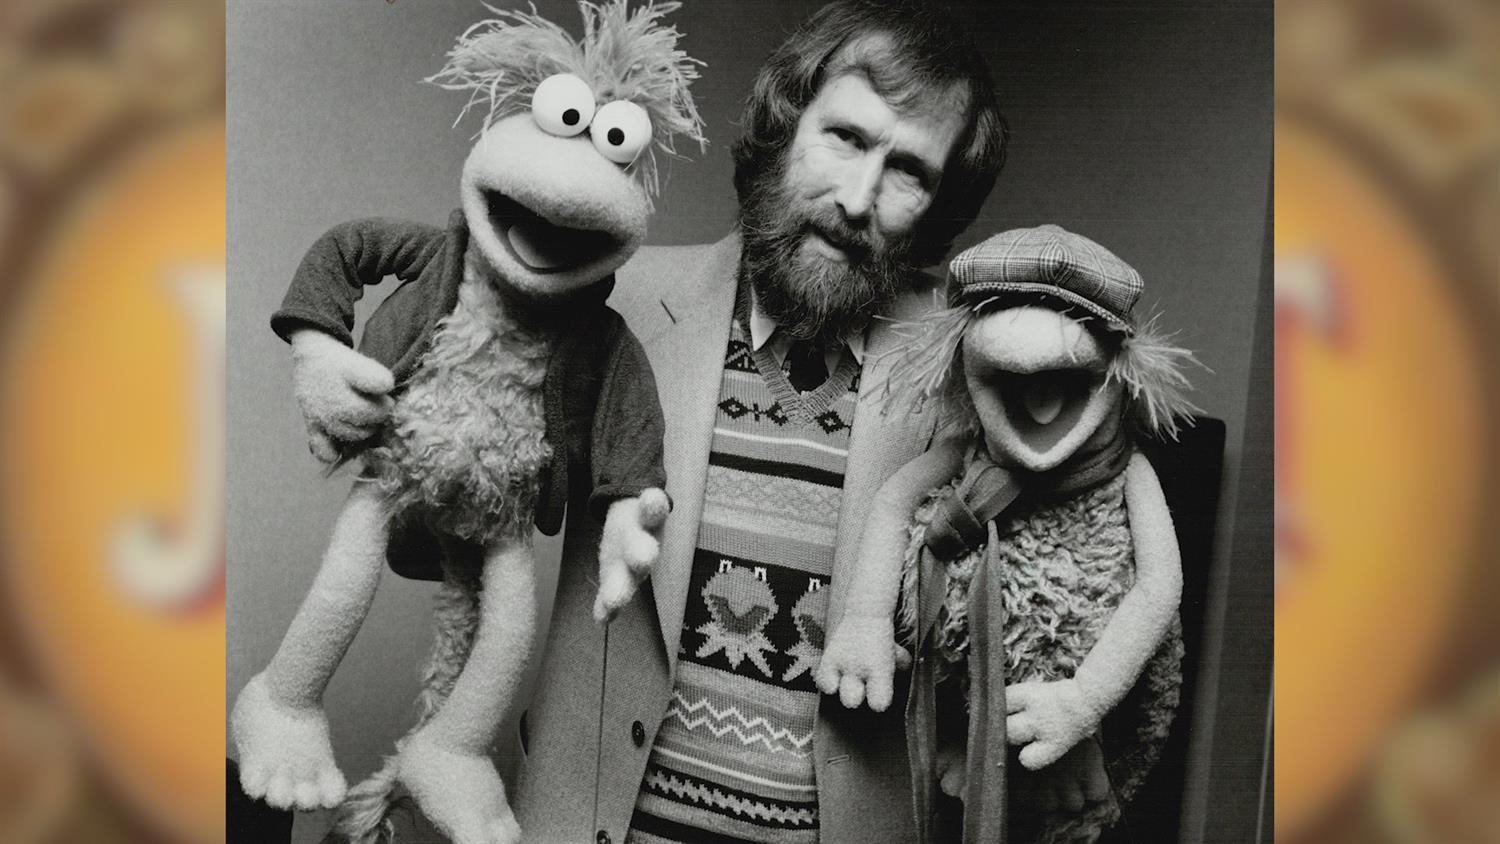 Jim Henson's Vision, As Told By The Muppet Puppeteers